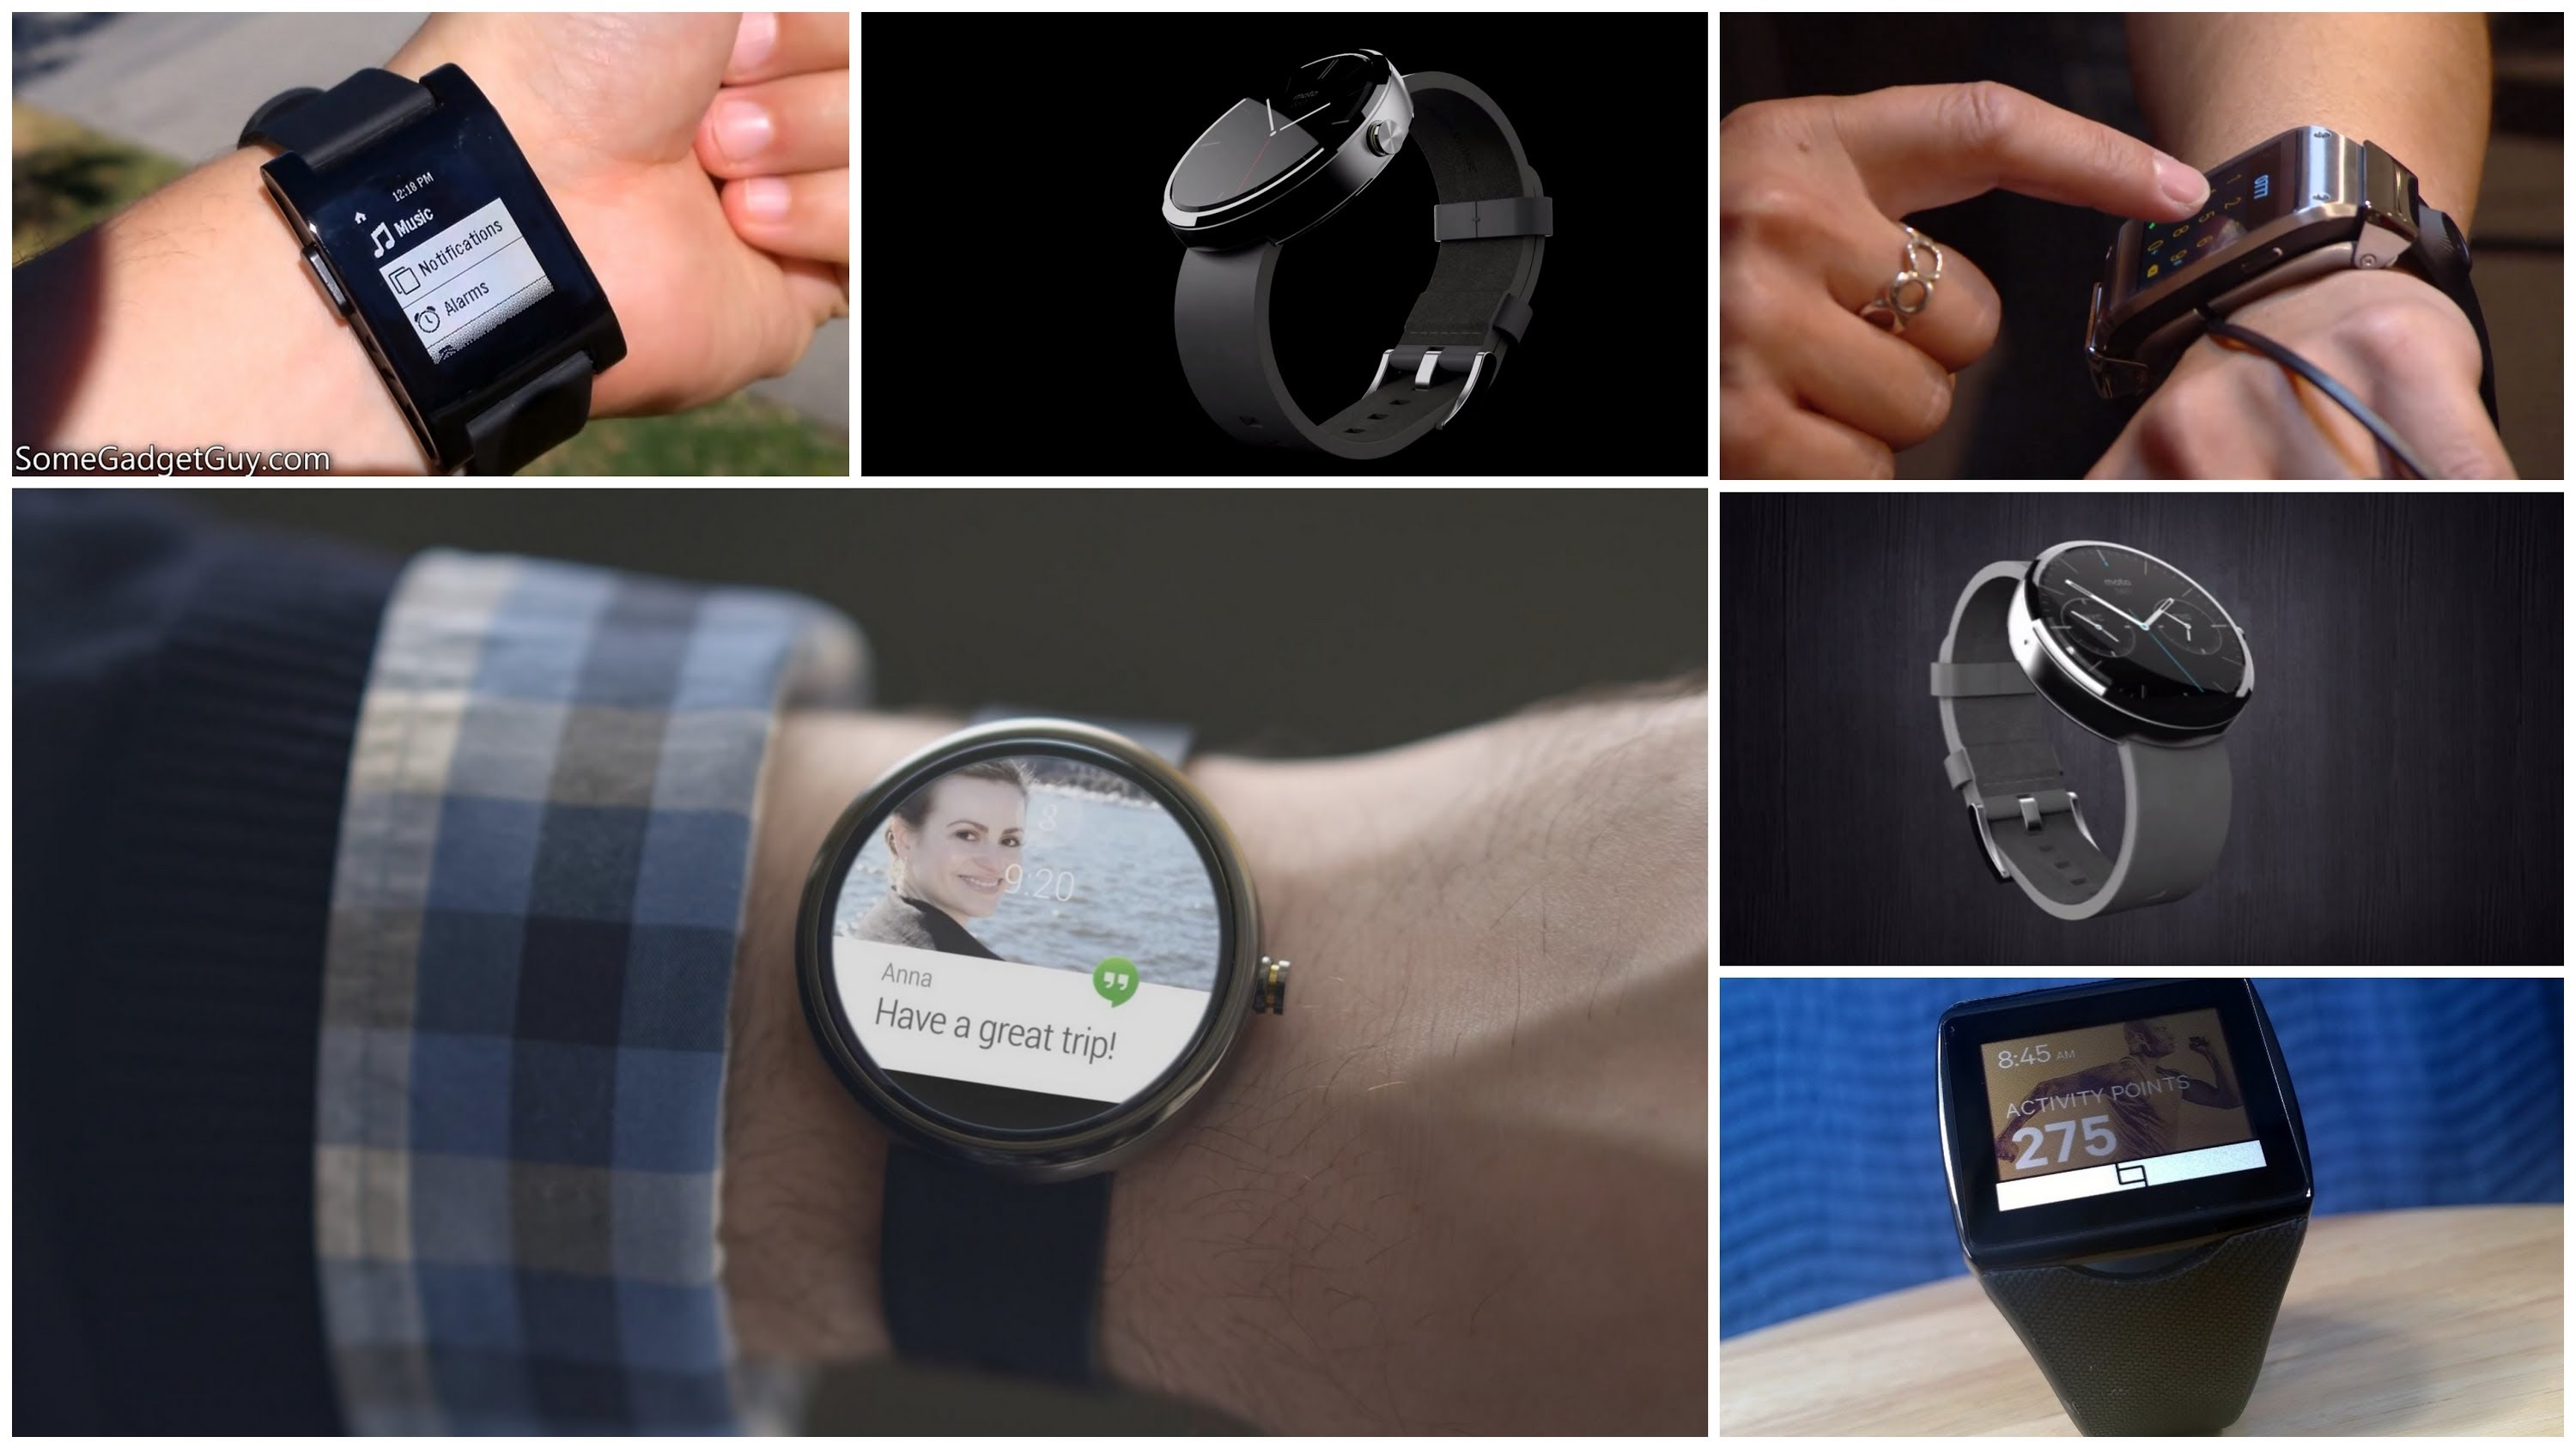 Moto360、G watch、Gear Live对比评测